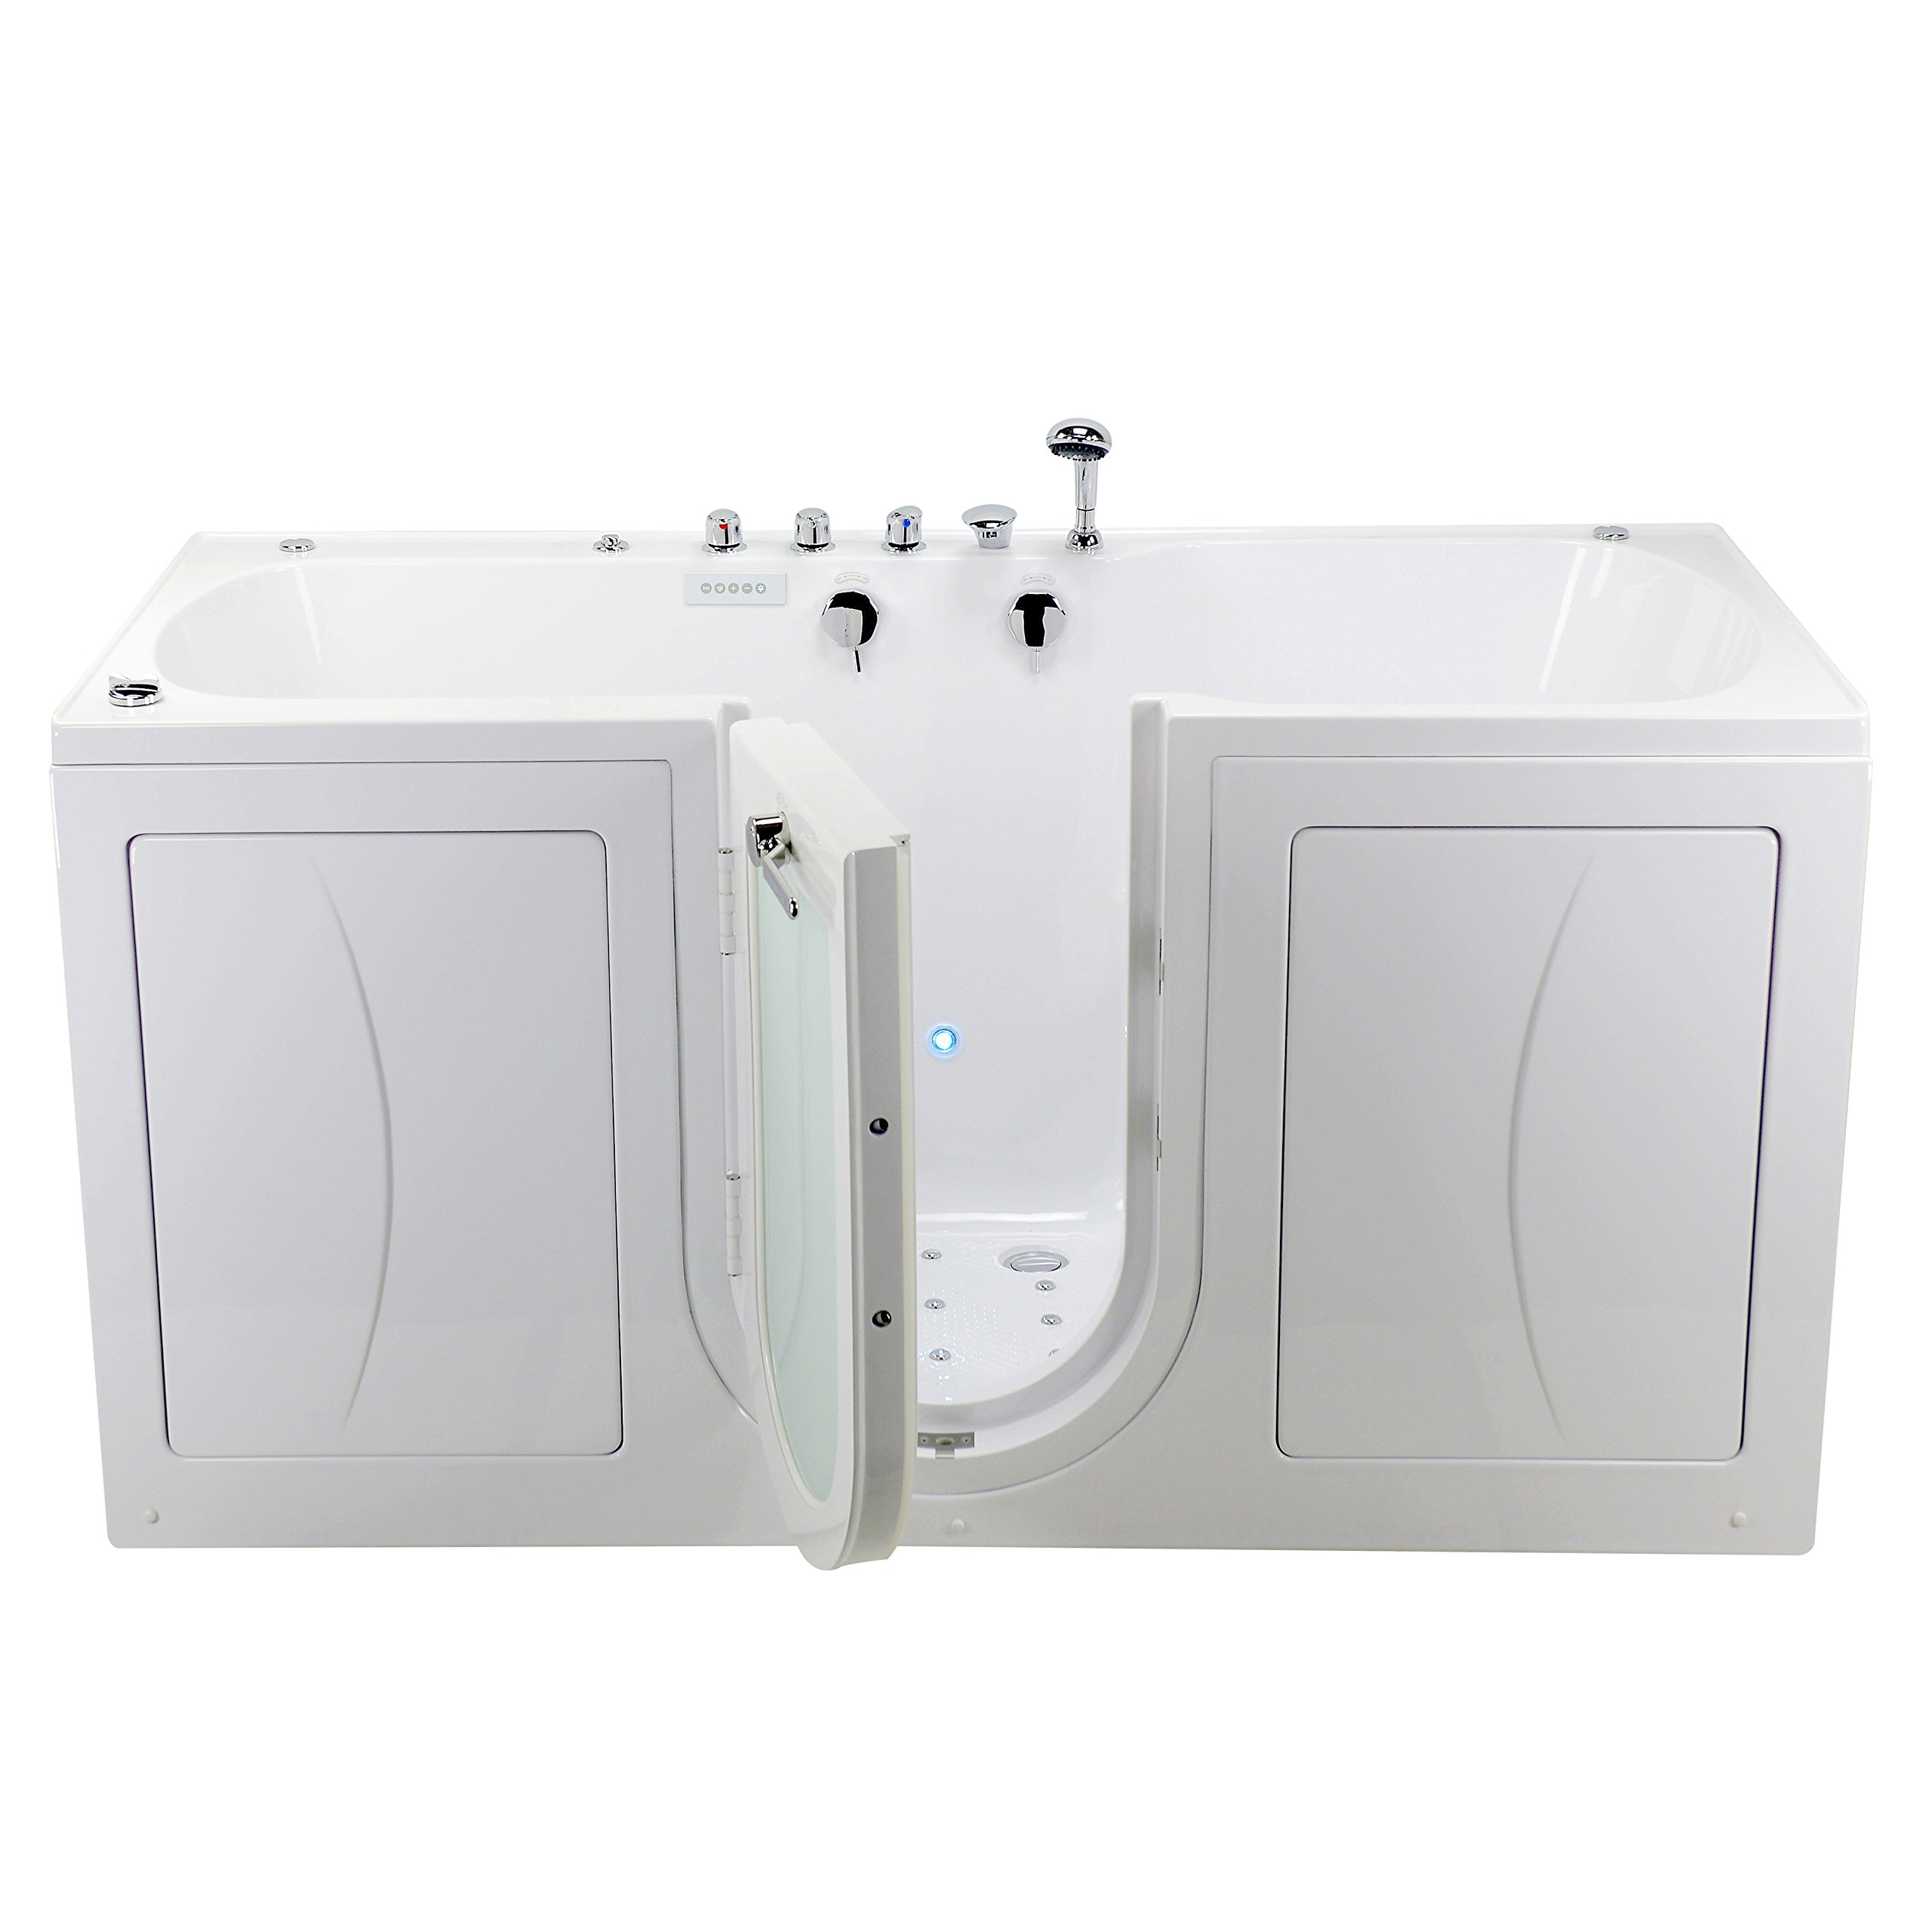 Ella's Bubbles O2SA3680TMF Big4Two Acrylic Triple Massage and Microbubble Outward Swing Door Walk-in Bathtub with Fast Fill Faucet Set, Two Seats, Center 2'' Dual Drains, 36'' x 80, White